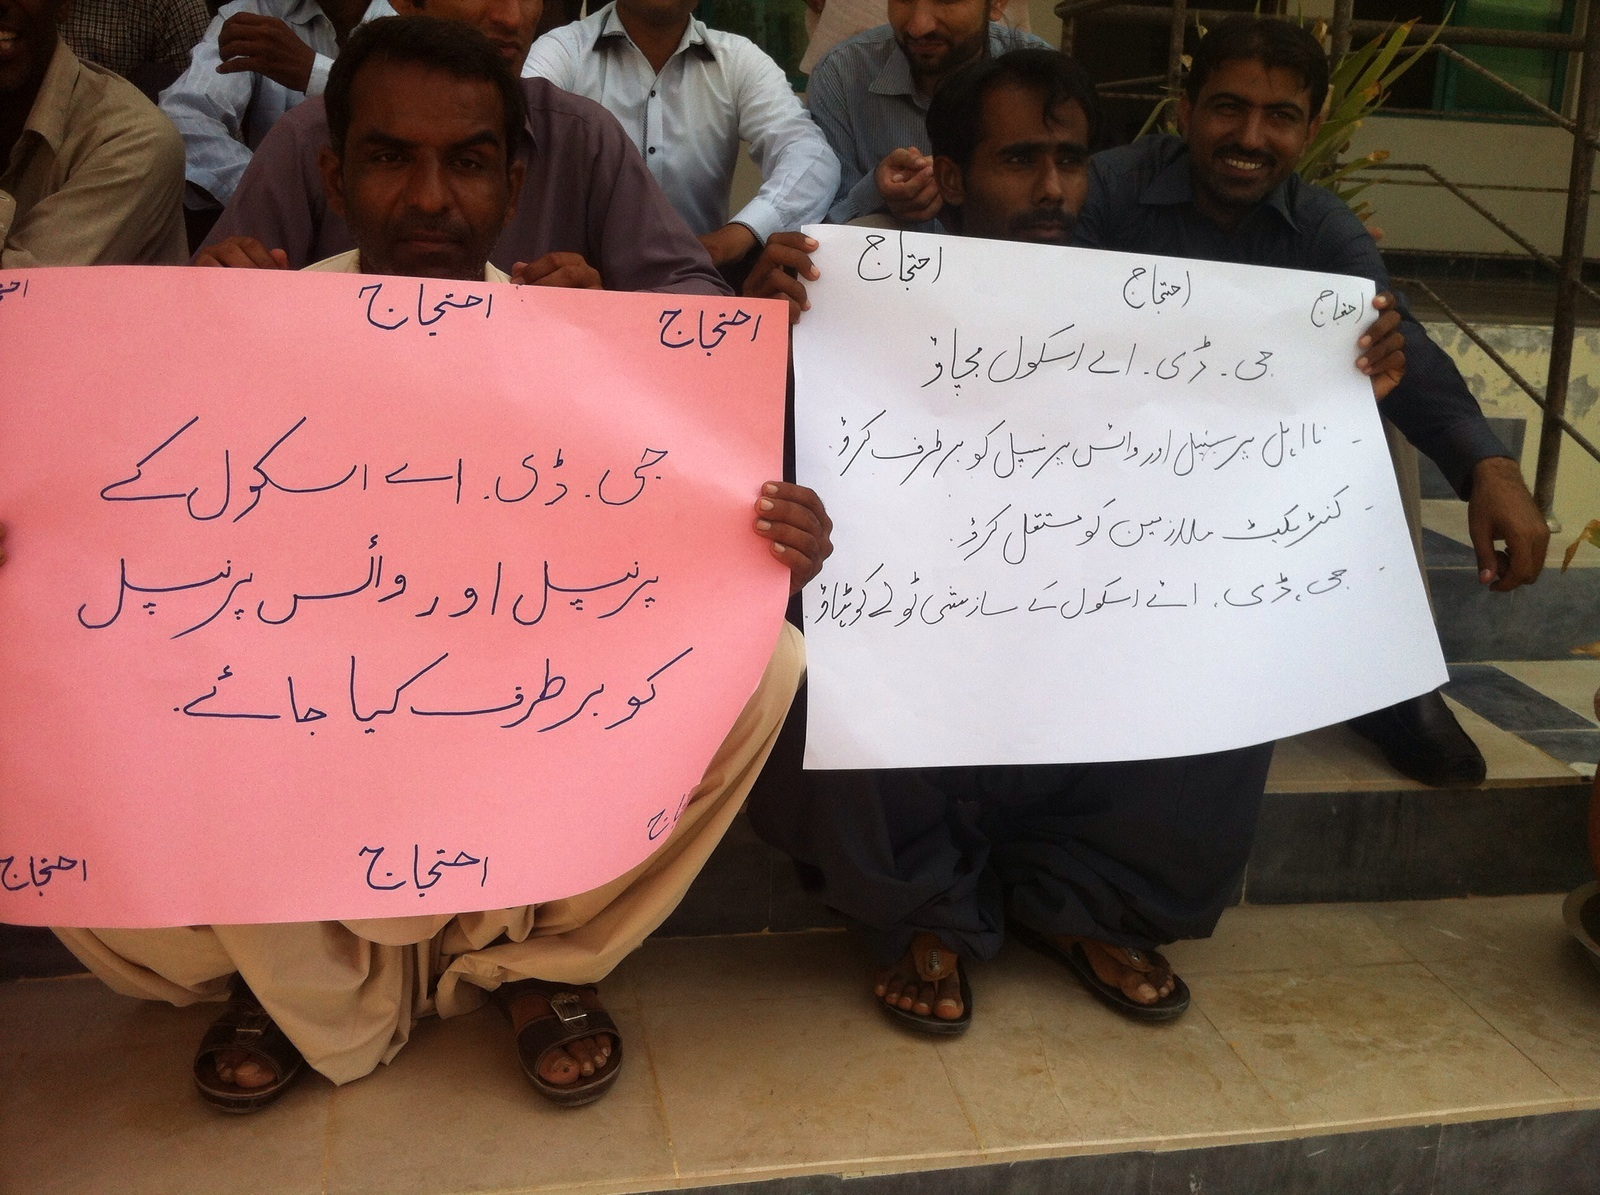 Protesters carrying placards against GDA School Asministration